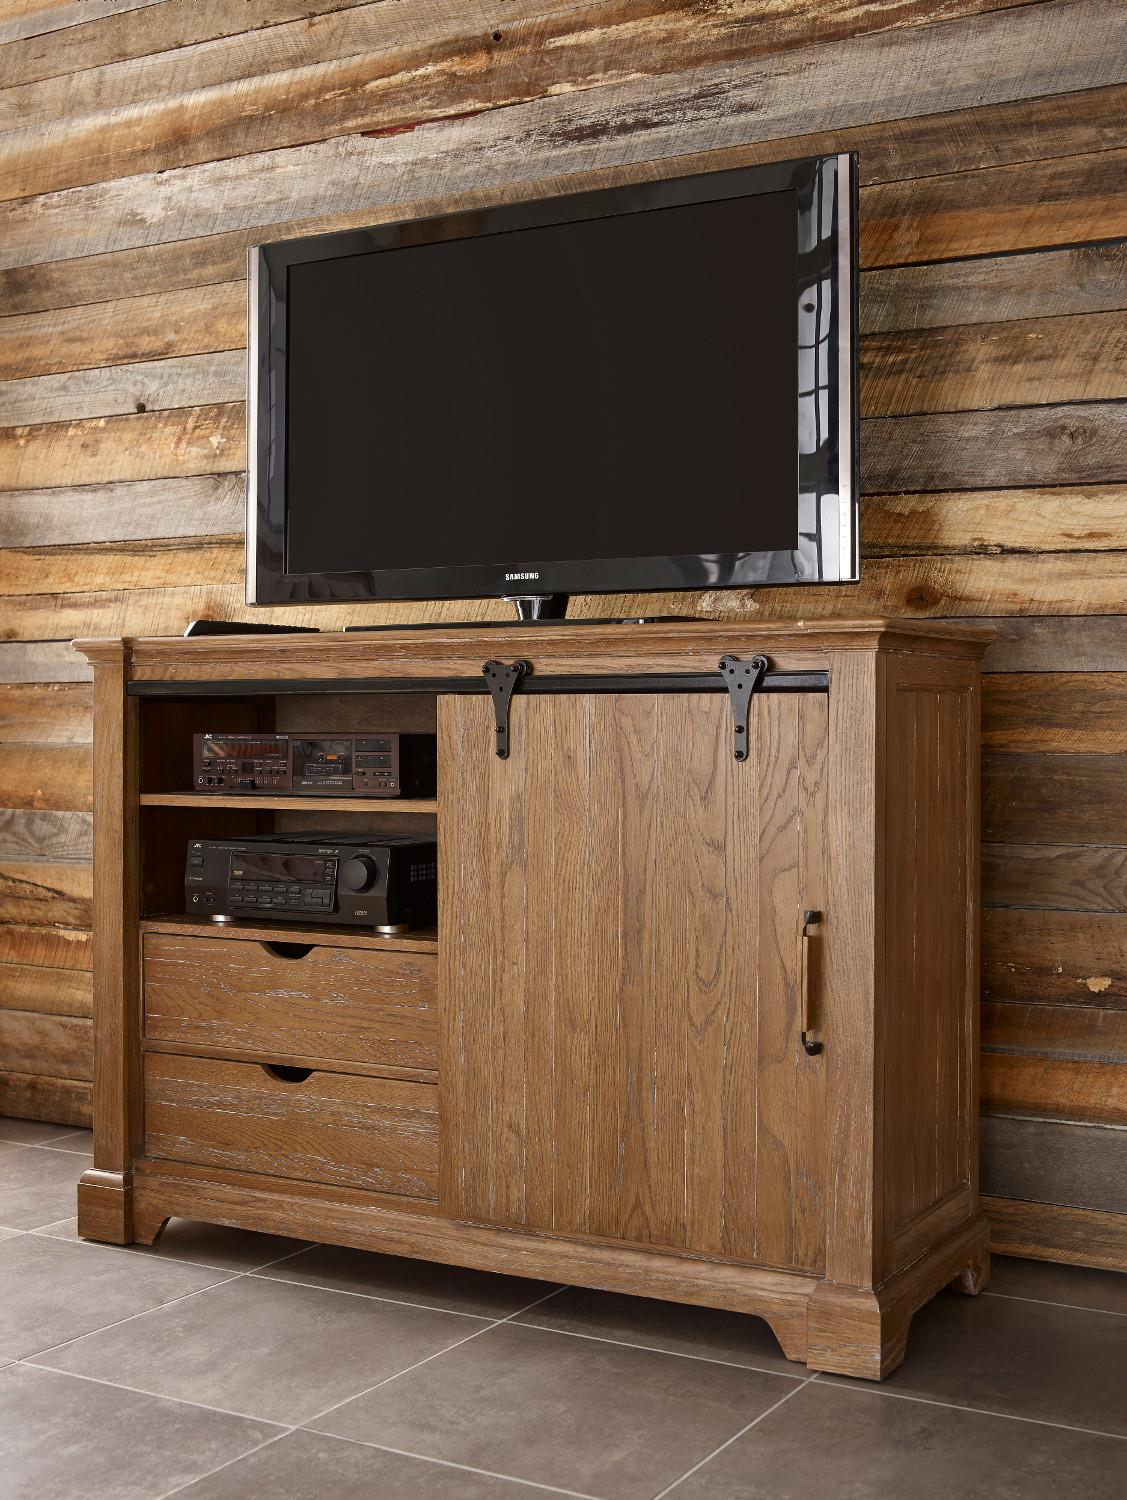 Transitional Rustic Sliding Barn Door Media Chest With